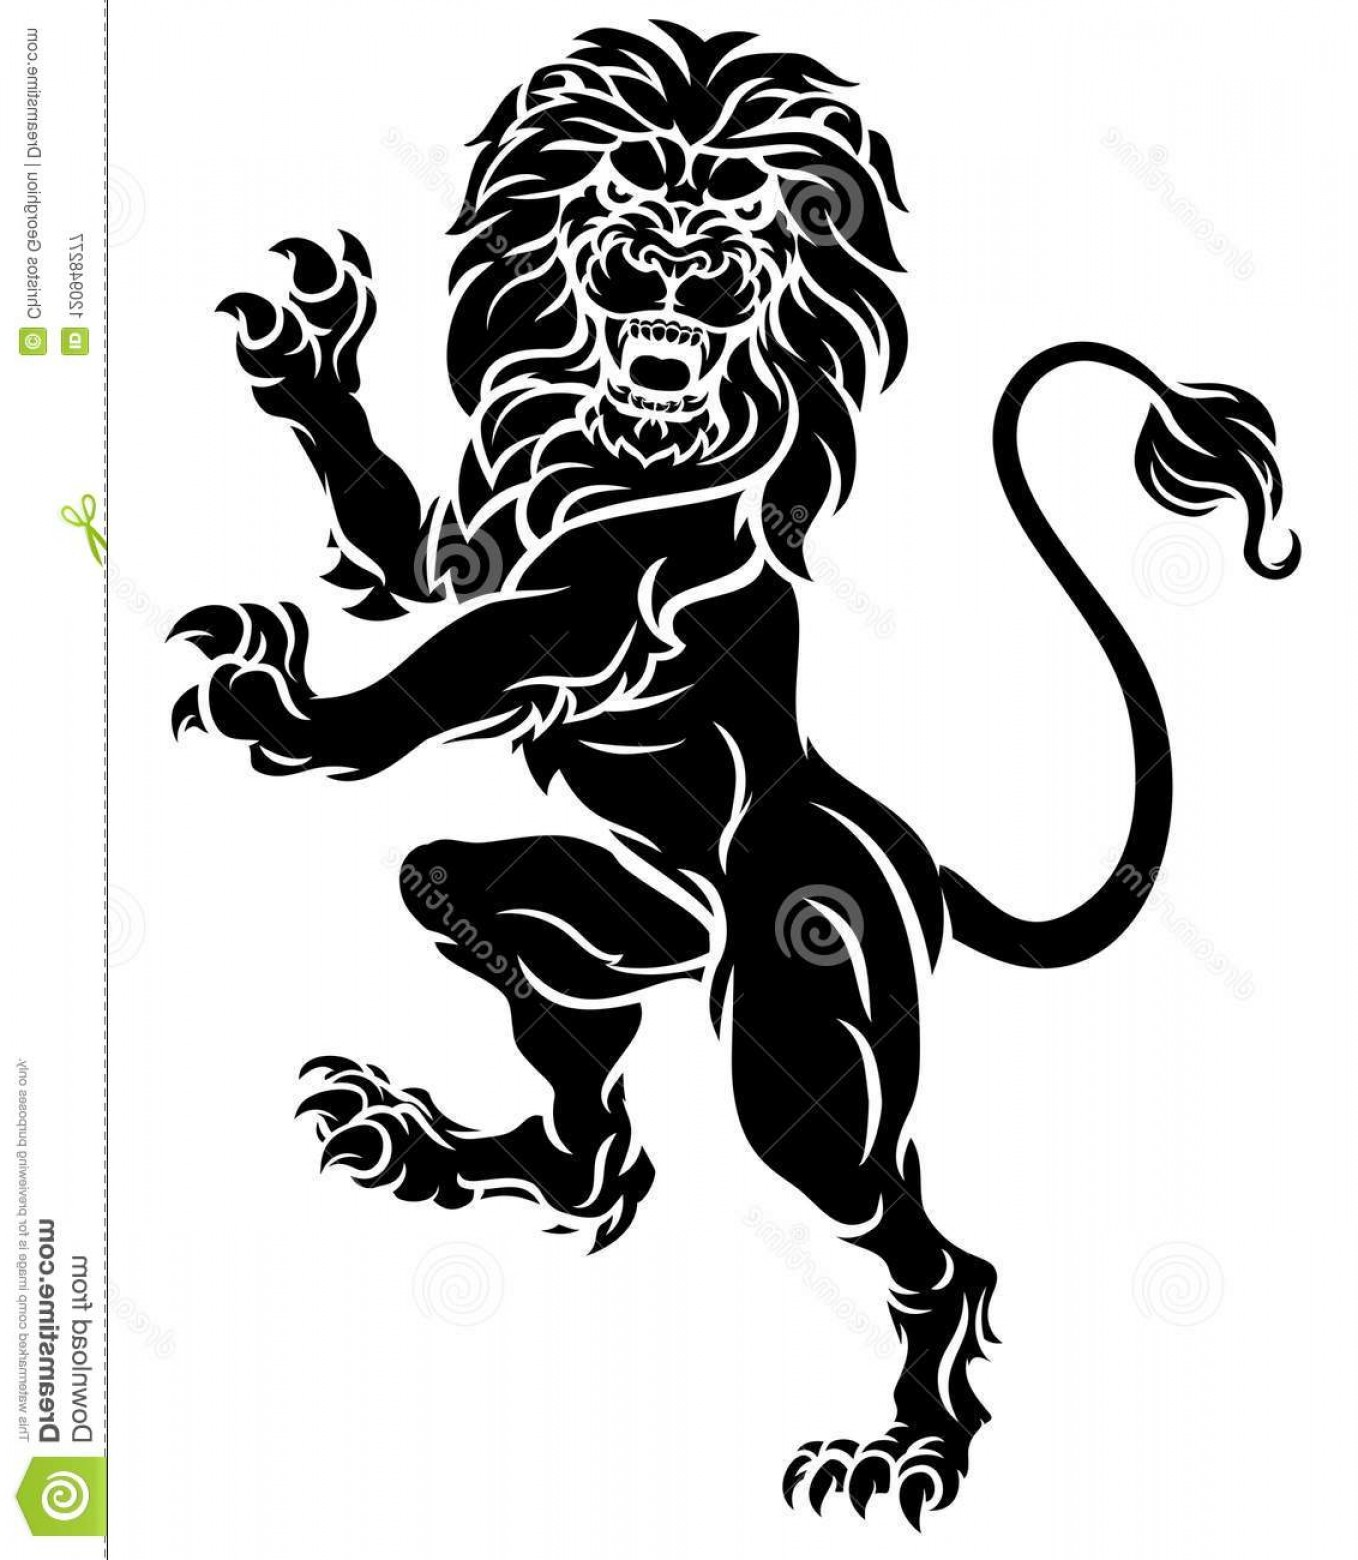 Crest And Coat Of Arms Vector Silhouette: Heraldic Lion Standing Rampant Crest Coat Arms Lion Rampant Standing Hind Legs Heraldic Crest Coat Arms Image